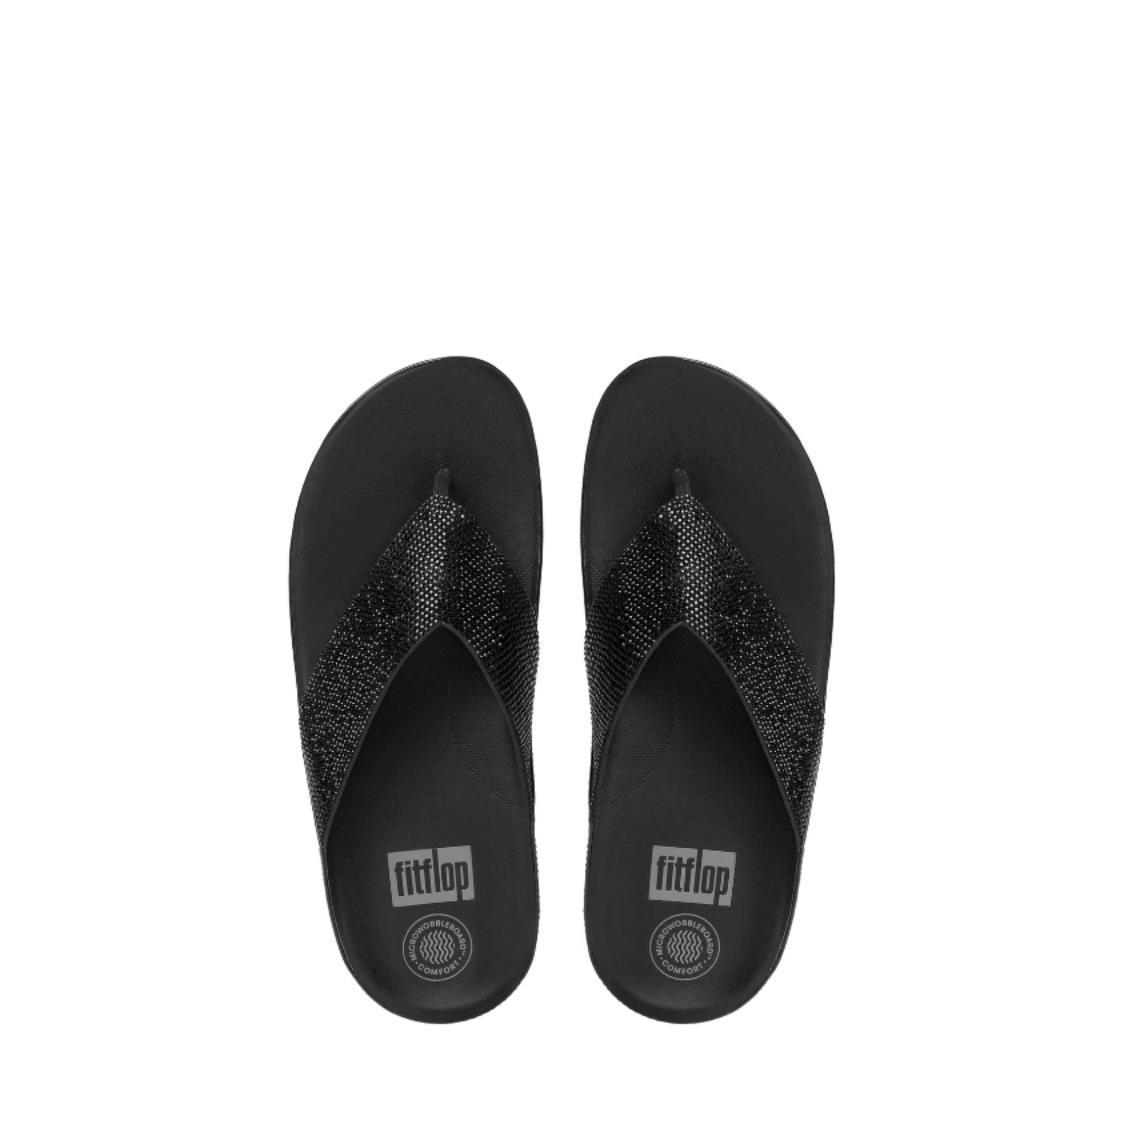 Crystall Toe-Thong Sandals Black